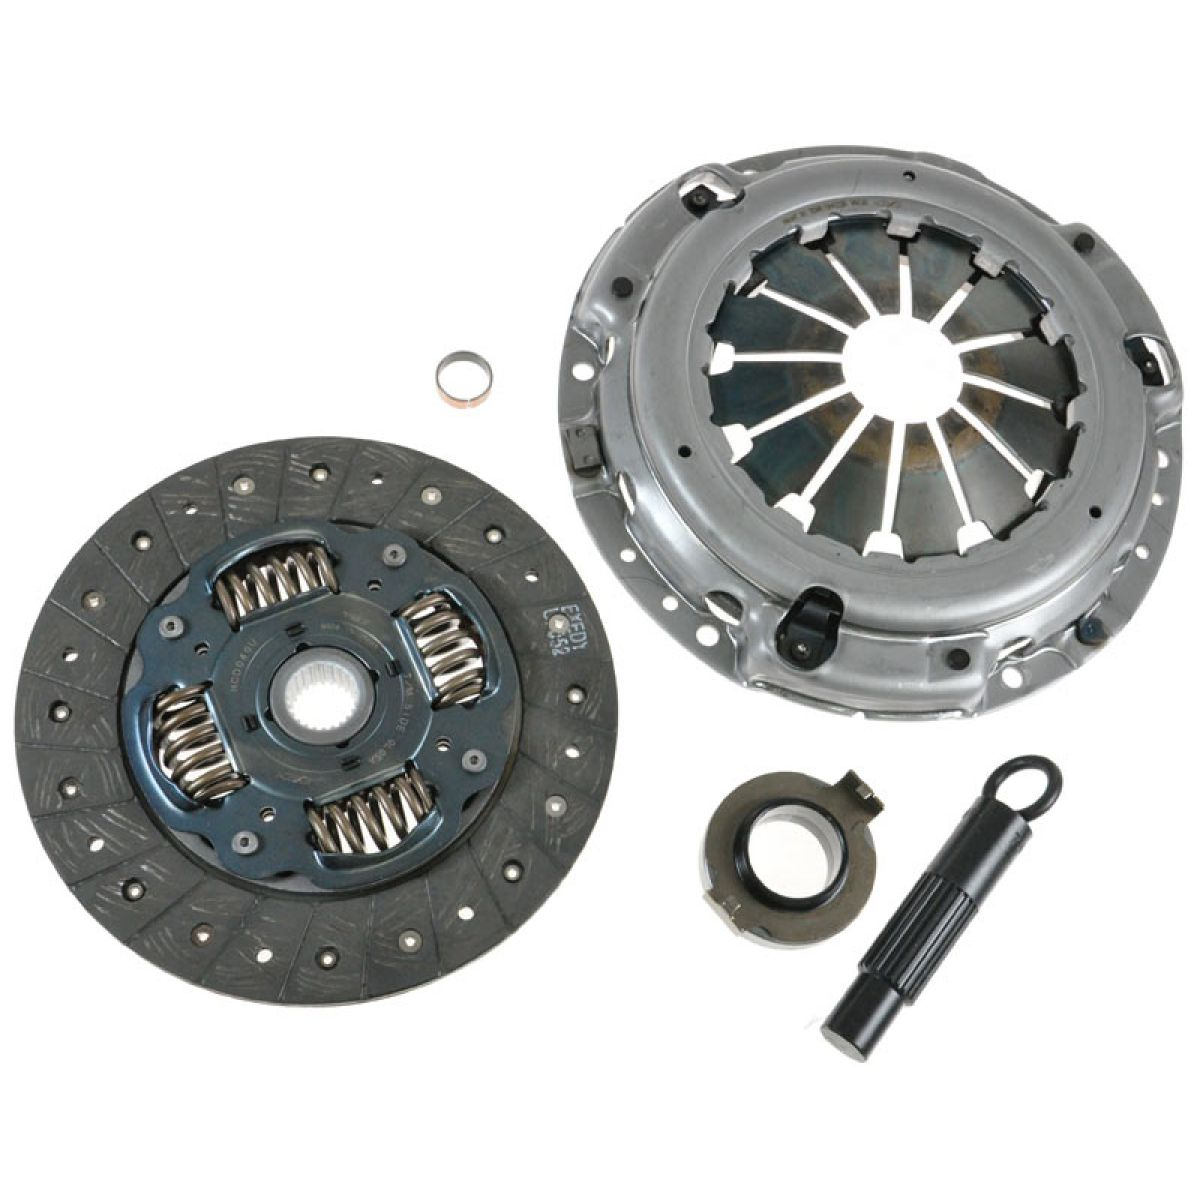 Auto Clutch Plate : Pressure plate throw out bearing clutch kit exedy for